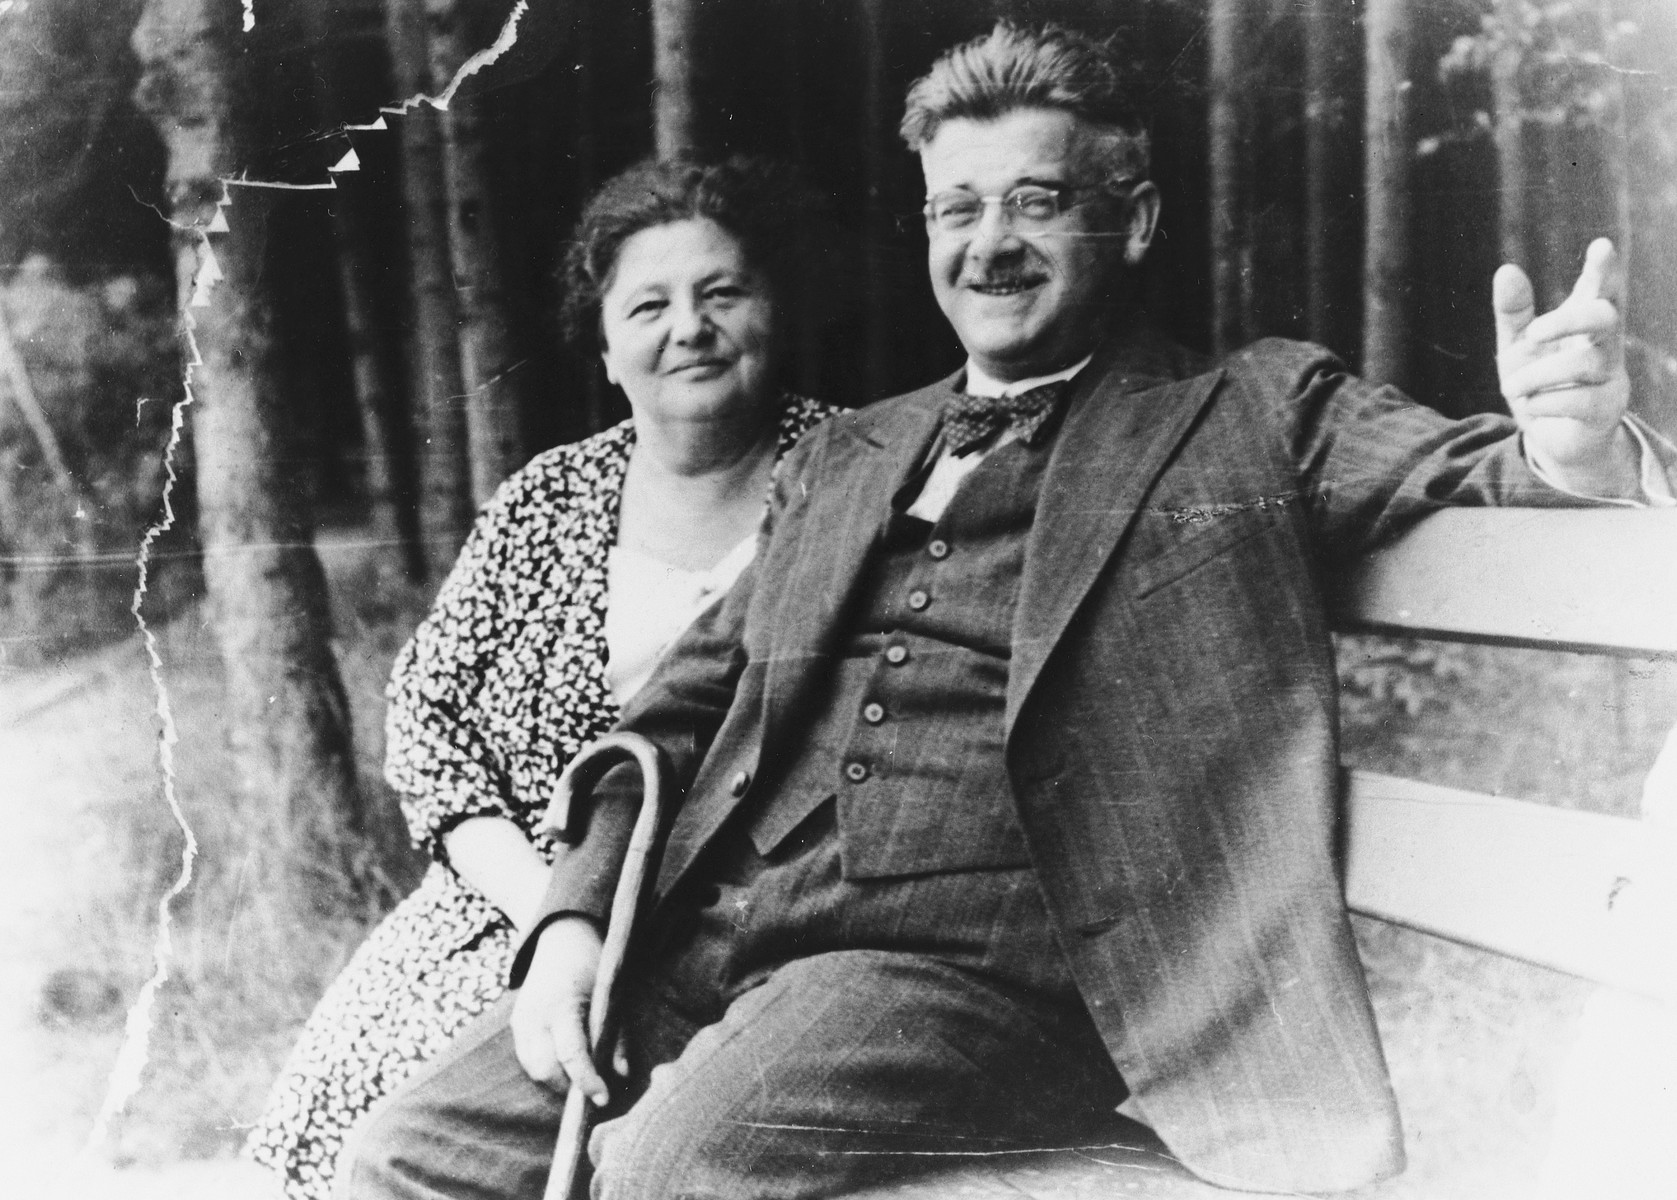 A Czech-Jewish couple sits on a park bench.  Pictured are Stephan and  Alice Loeffler.  Both later perished in Auschwitz.